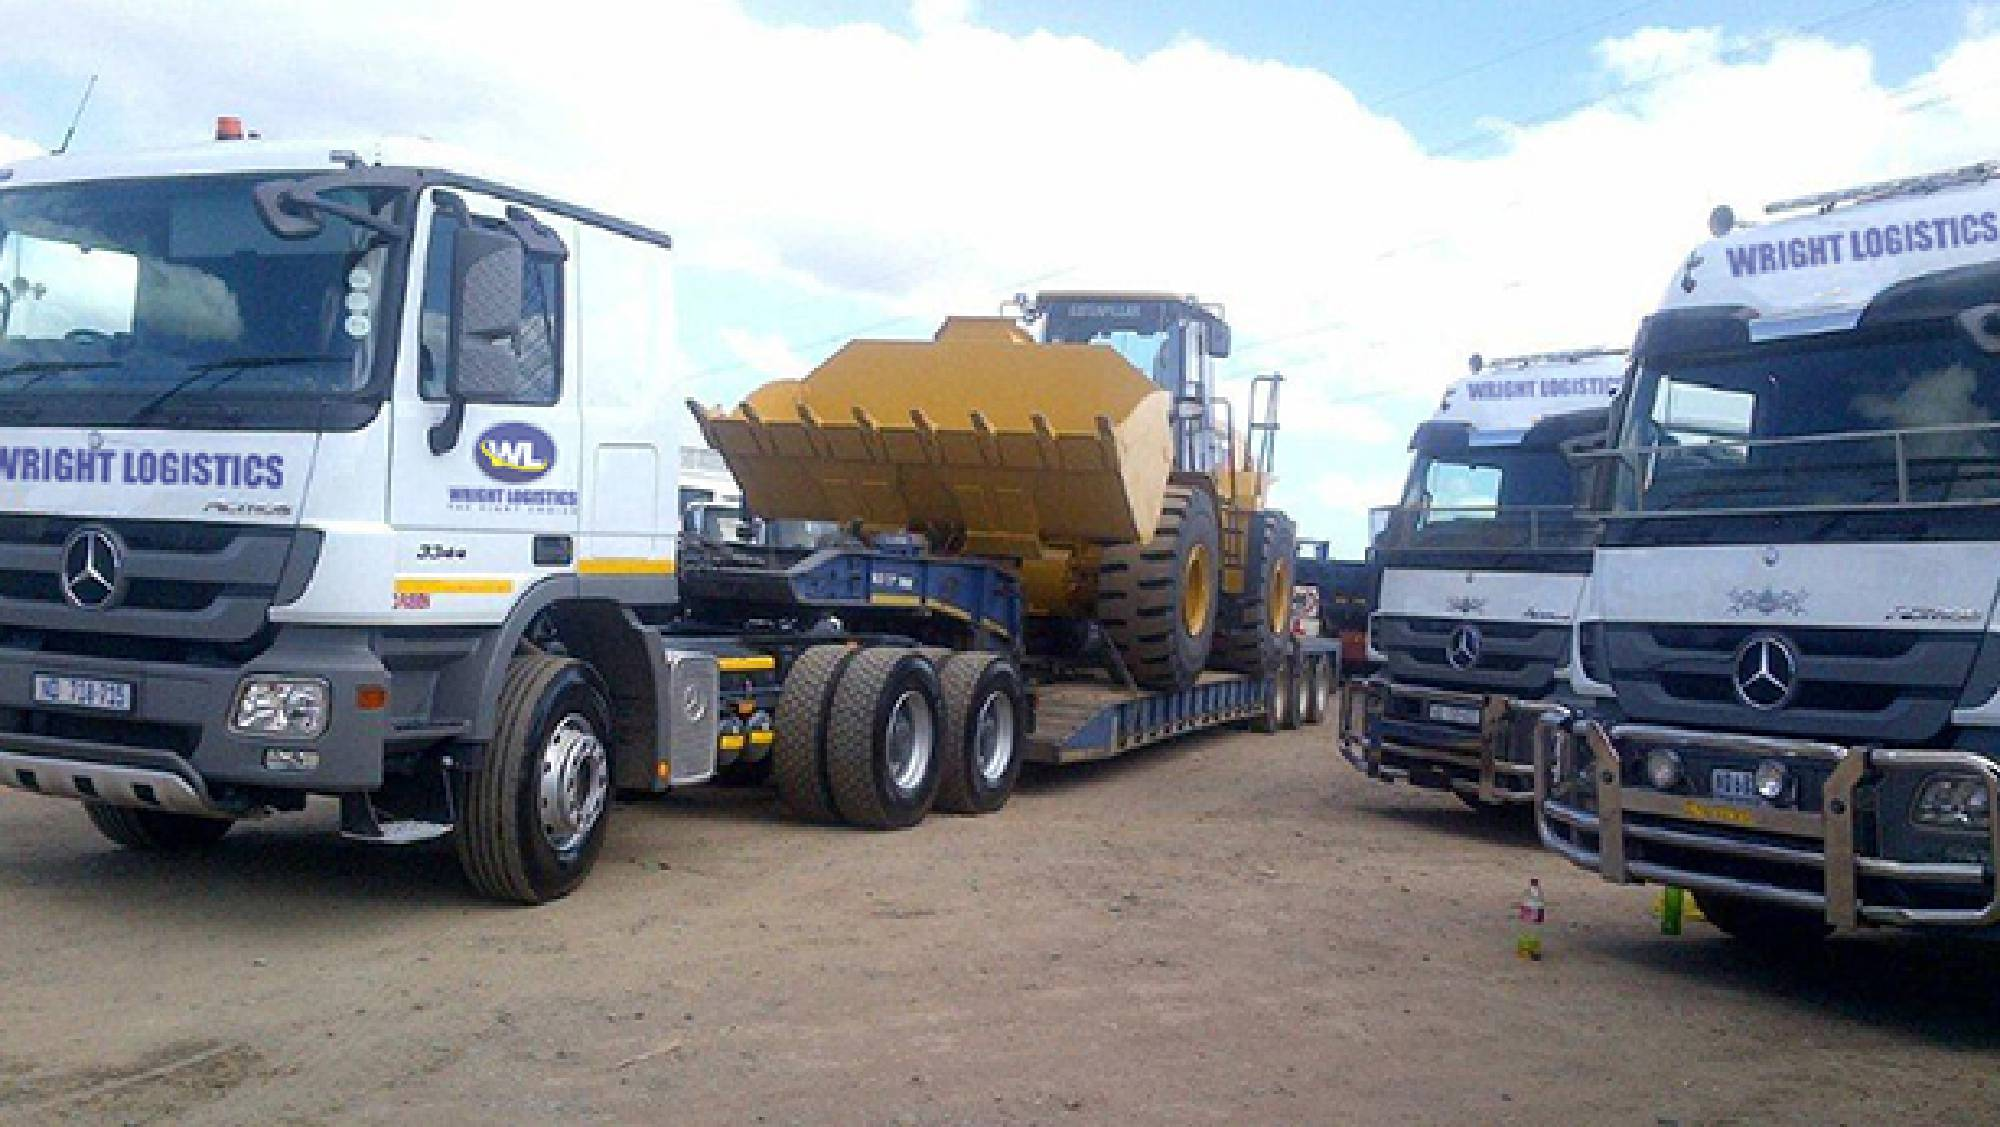 WRIGHT LOGISTICS - Abnormal loads